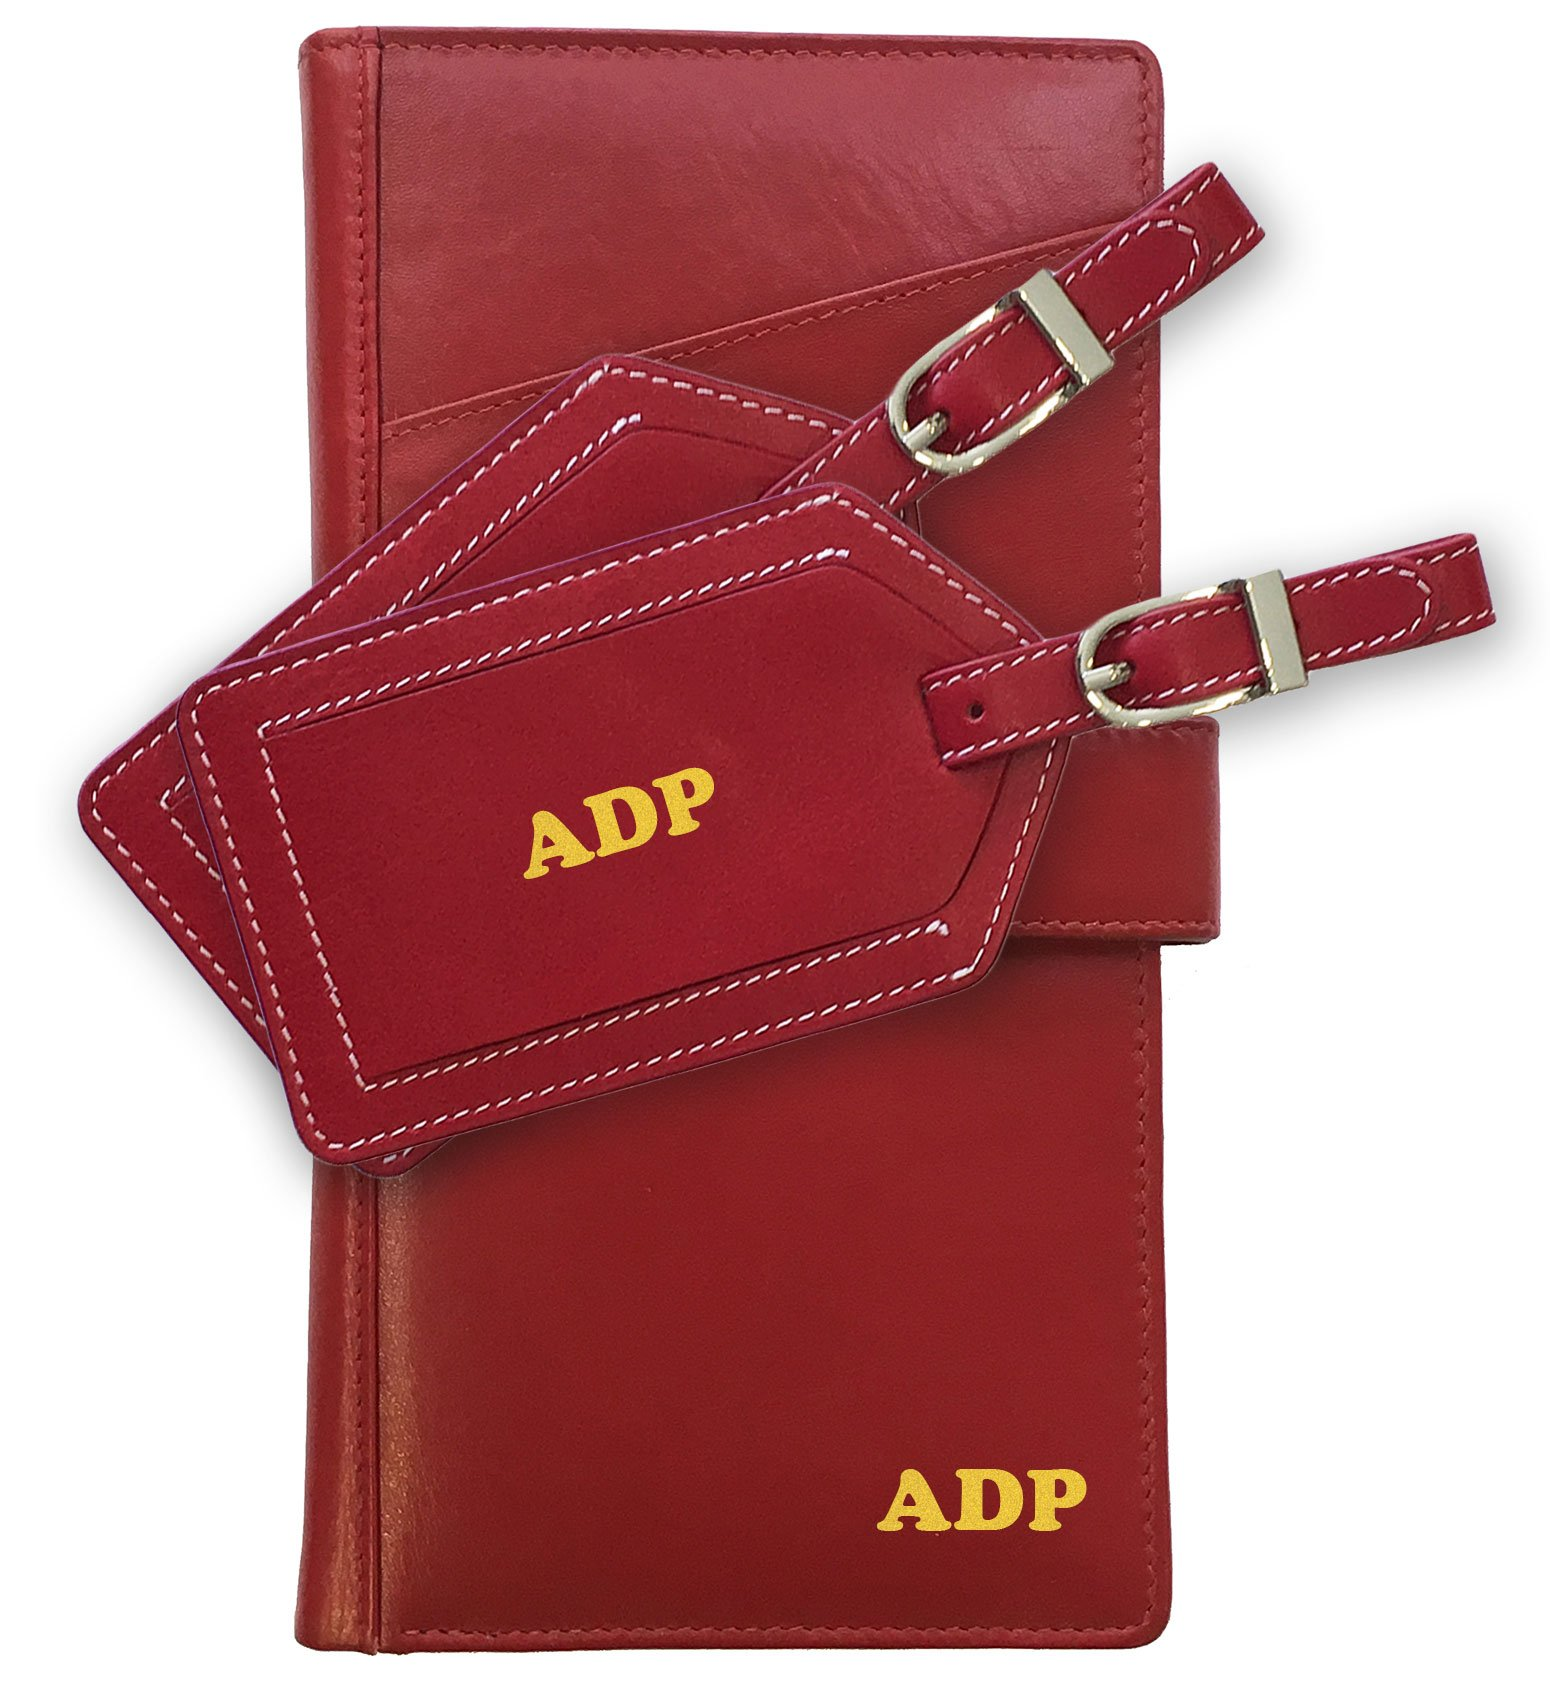 Personalized Monogrammed Red Leather RFID Travel Wallet and 2 Luggage Tags